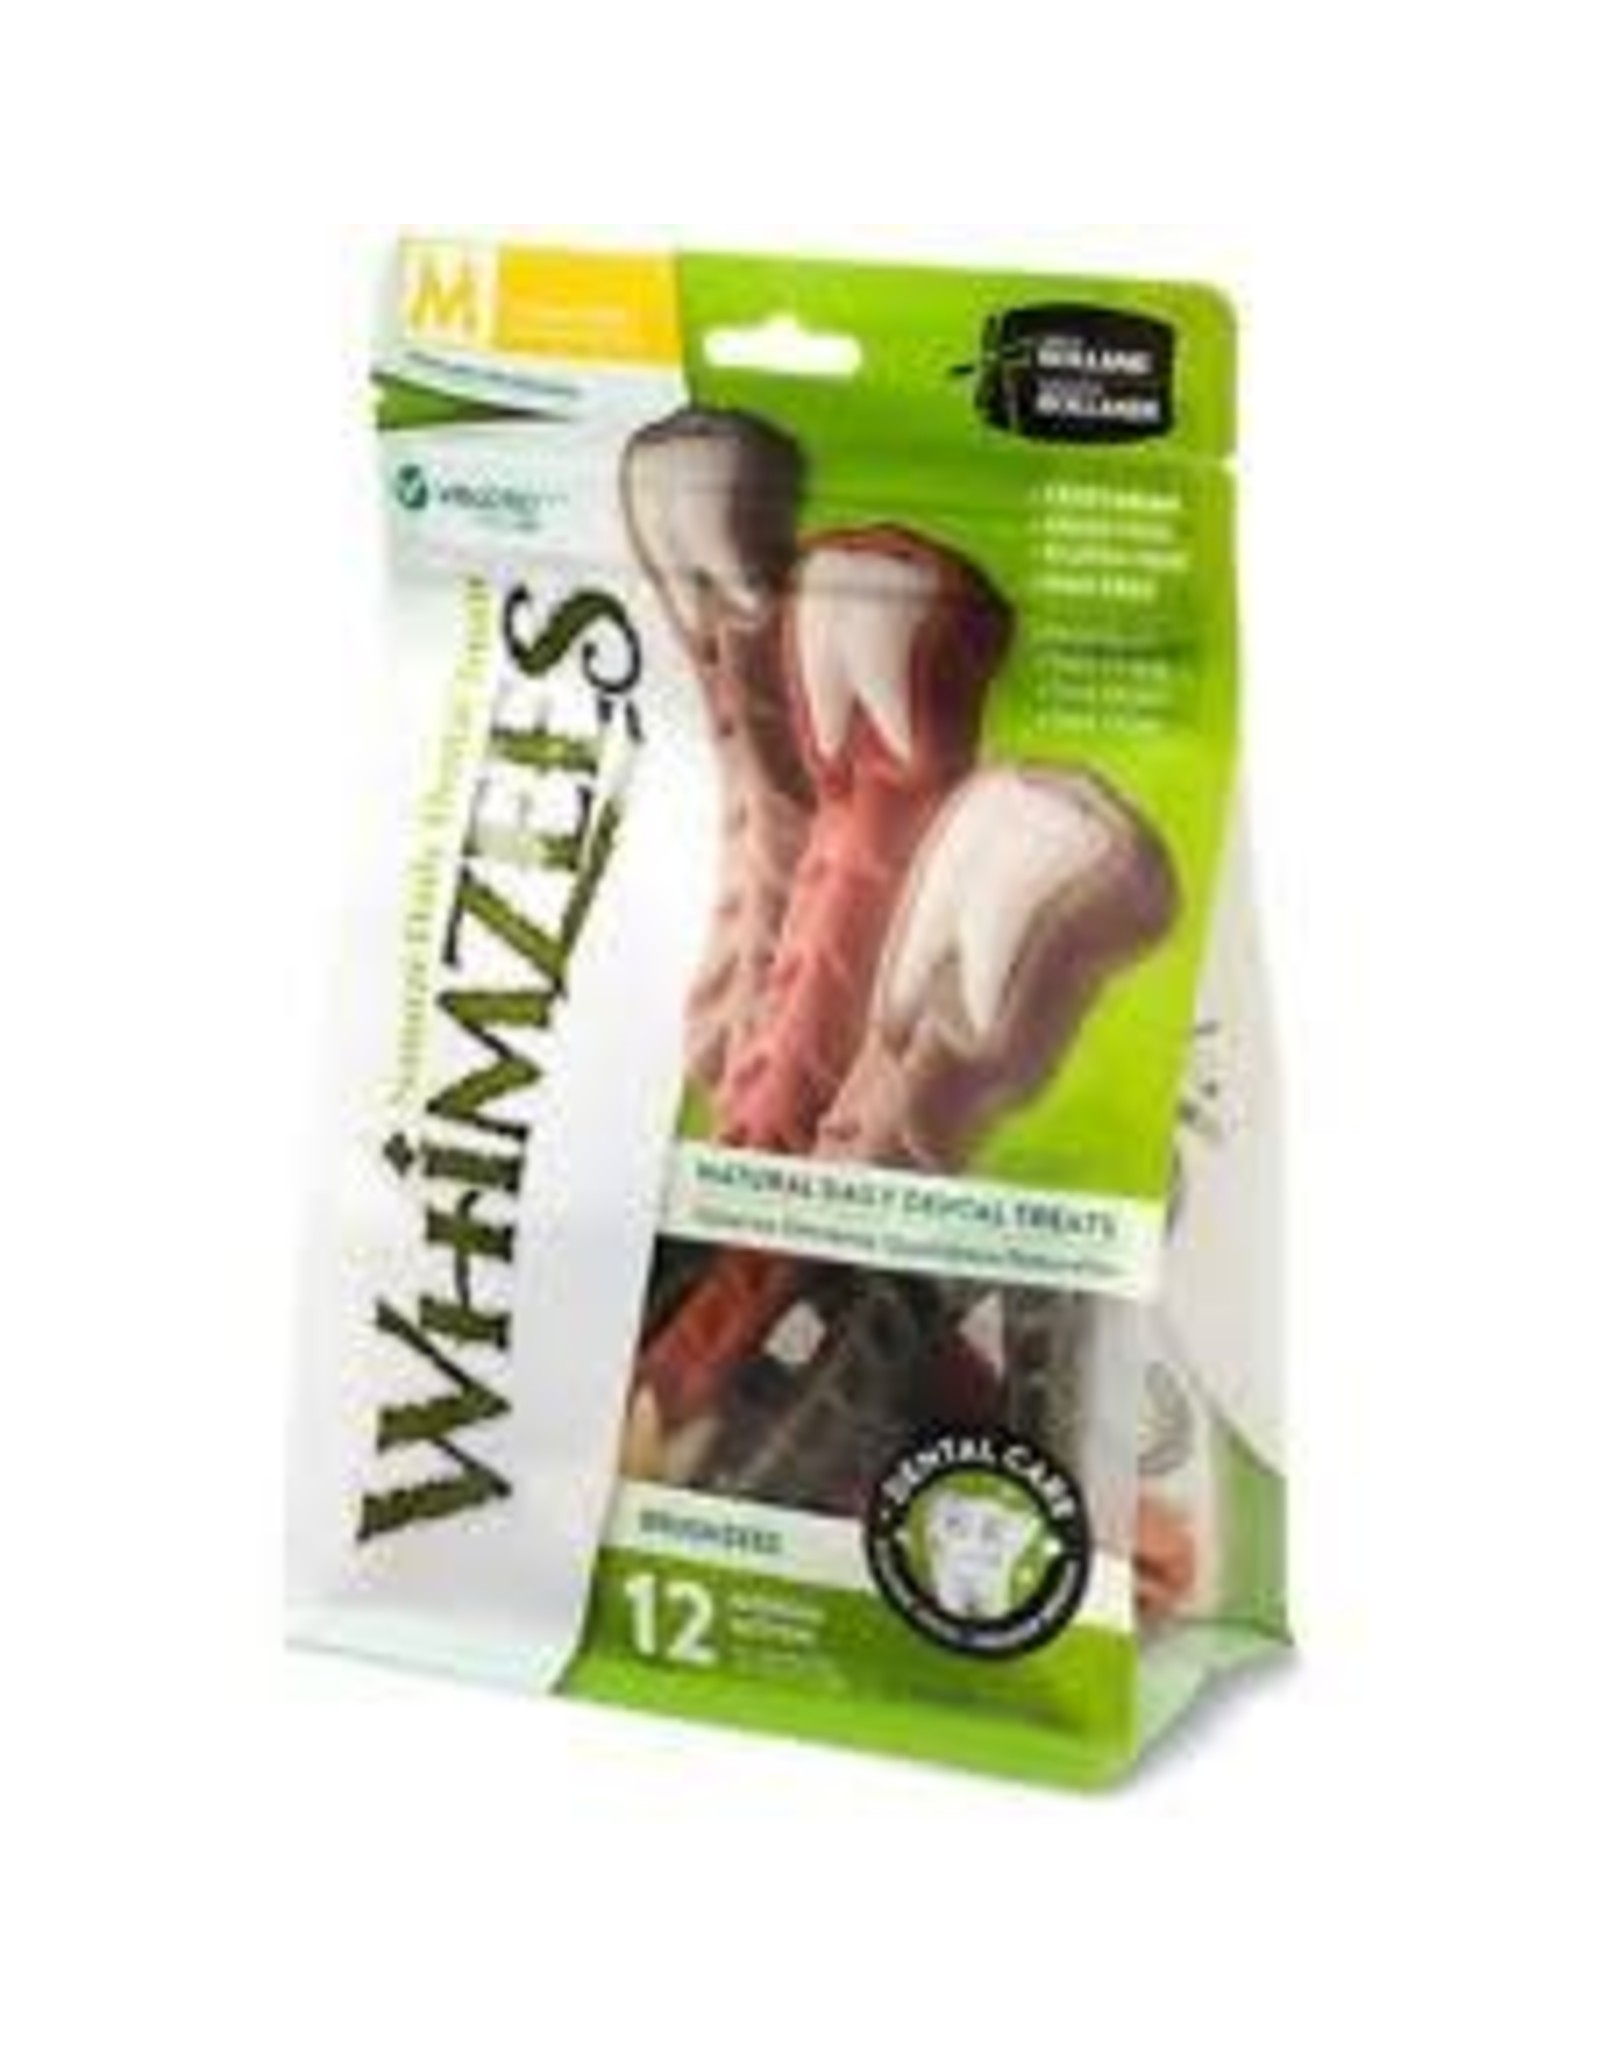 WHIMZEES WHIMZEES TOOTHBRUSH MD